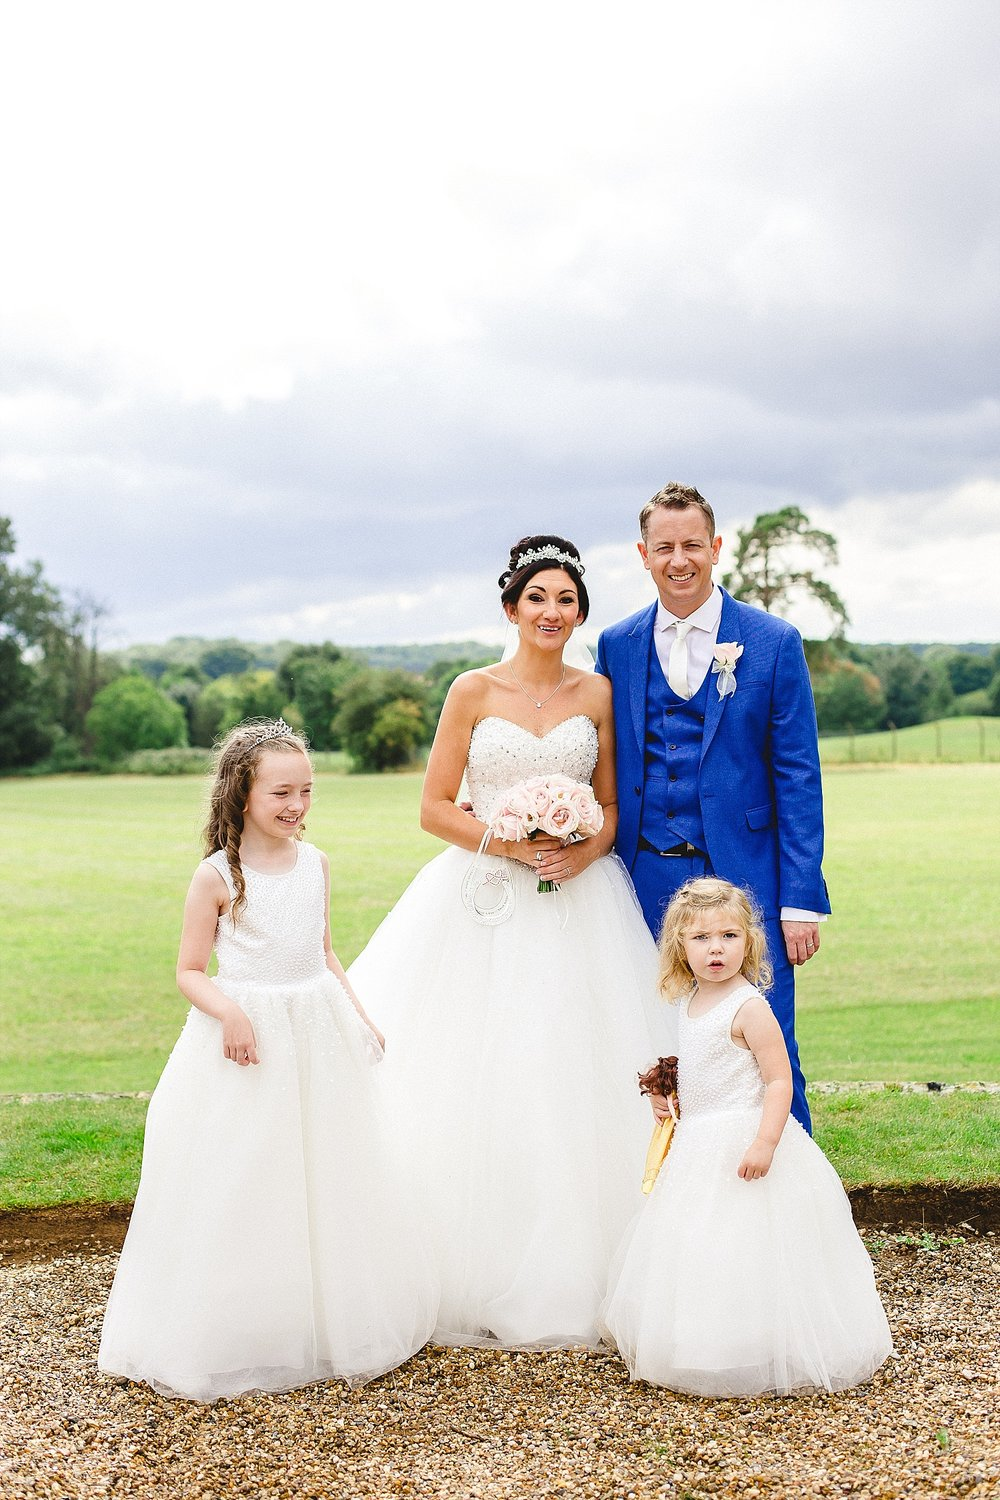 Gosfield_Hall_Essex_Wedding_Photographer_0066.jpg